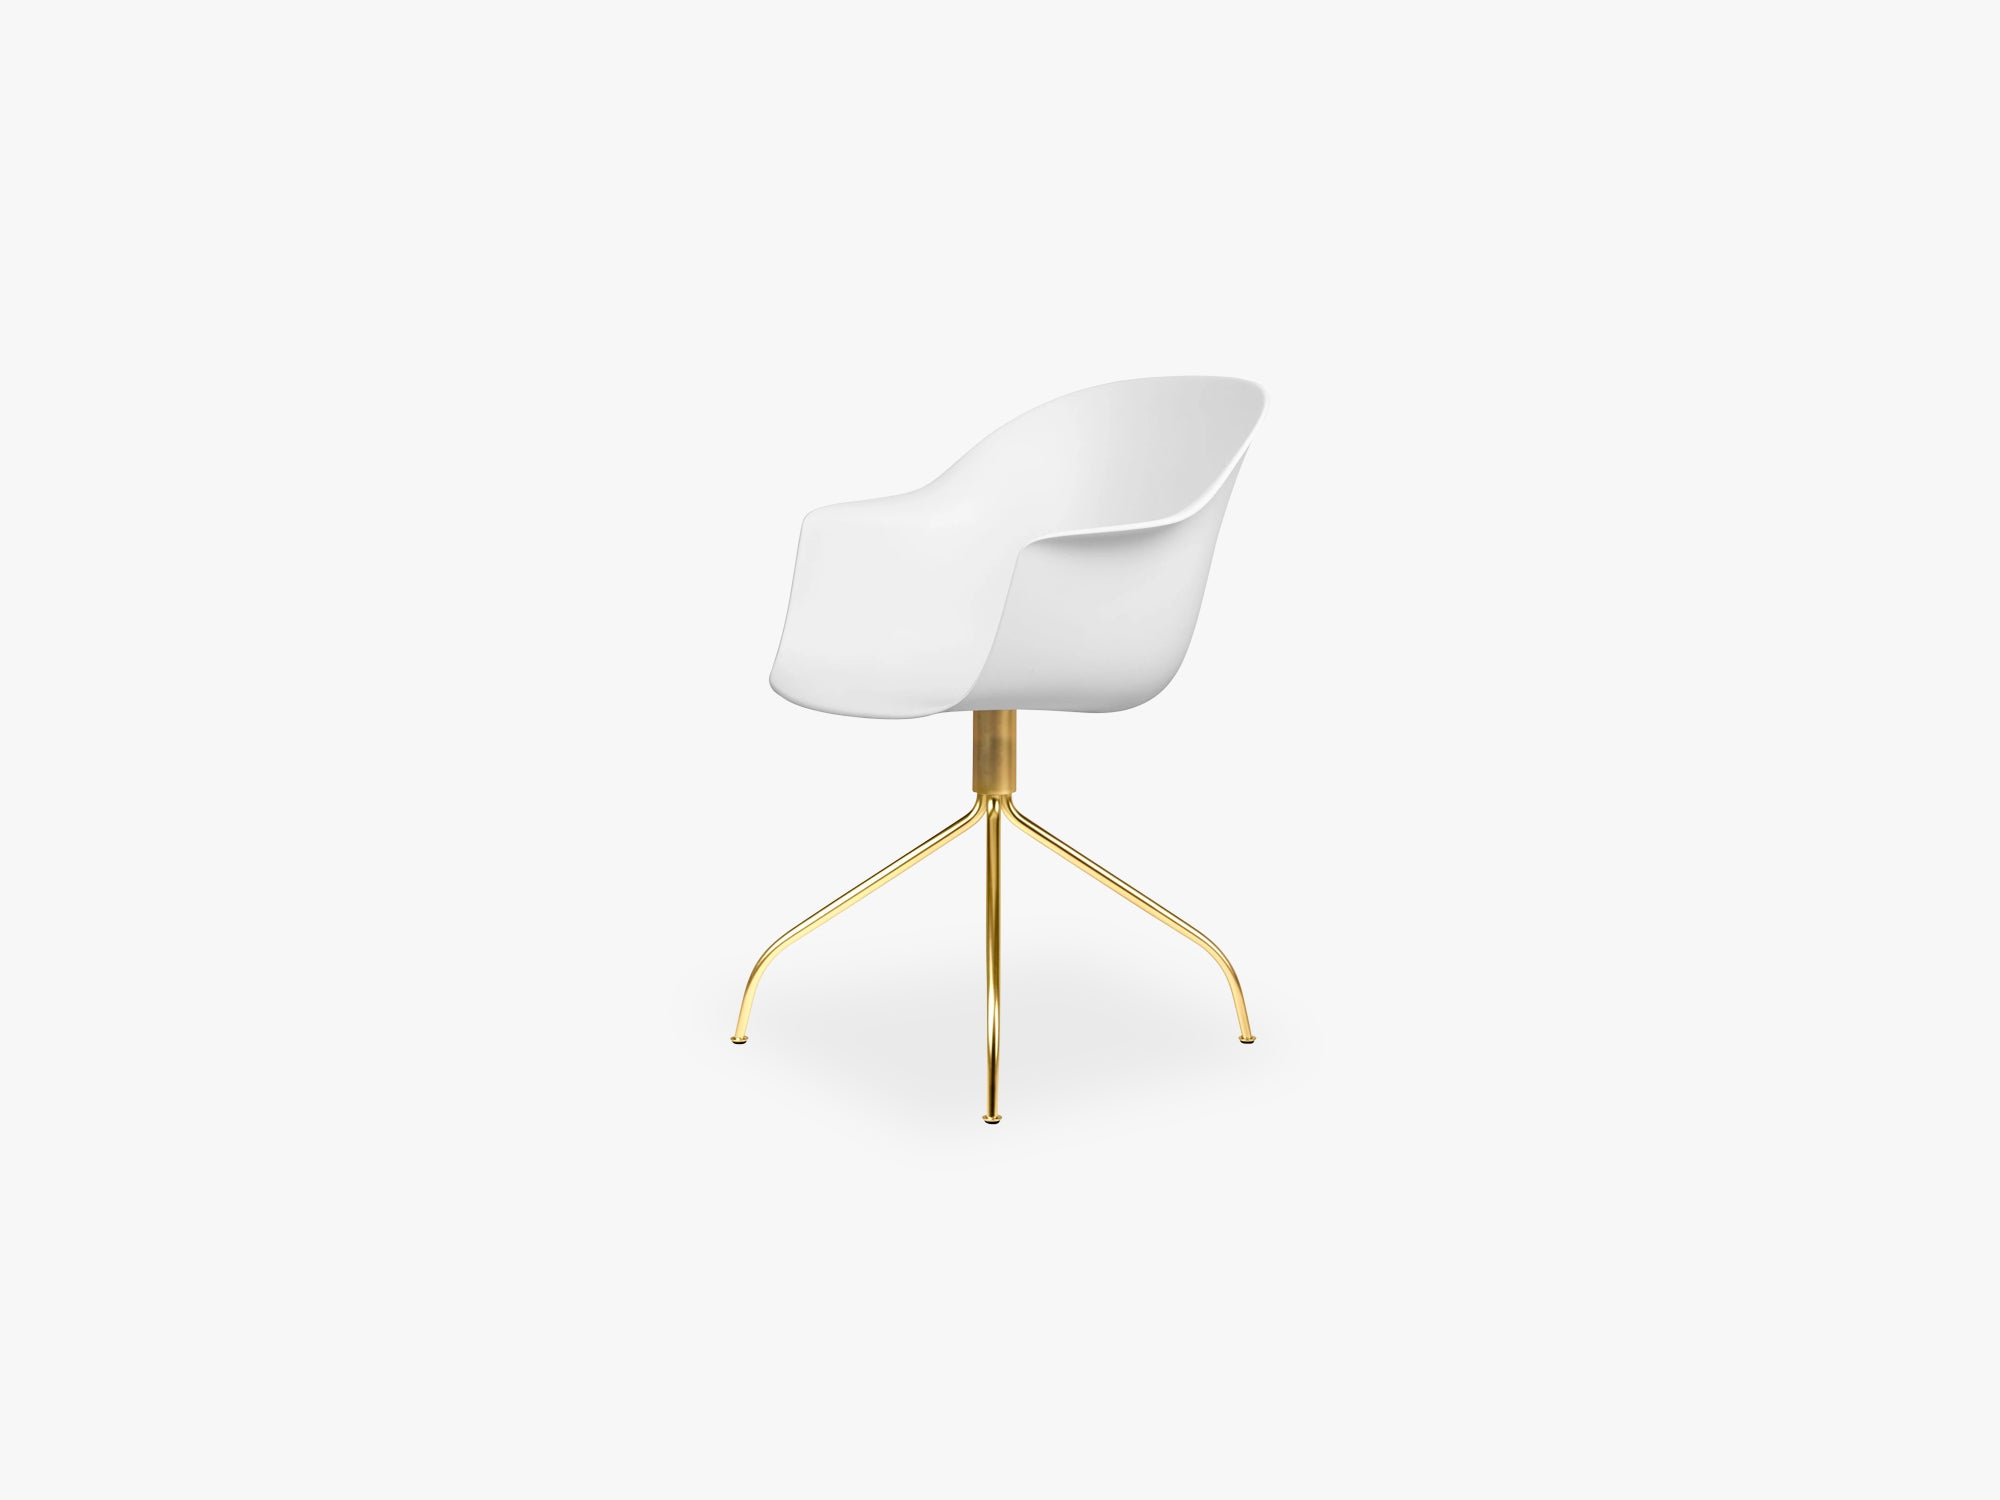 Bat Meeting Chair - Skal m Swivel base - Brass Semi Matt, Pure White fra GUBI